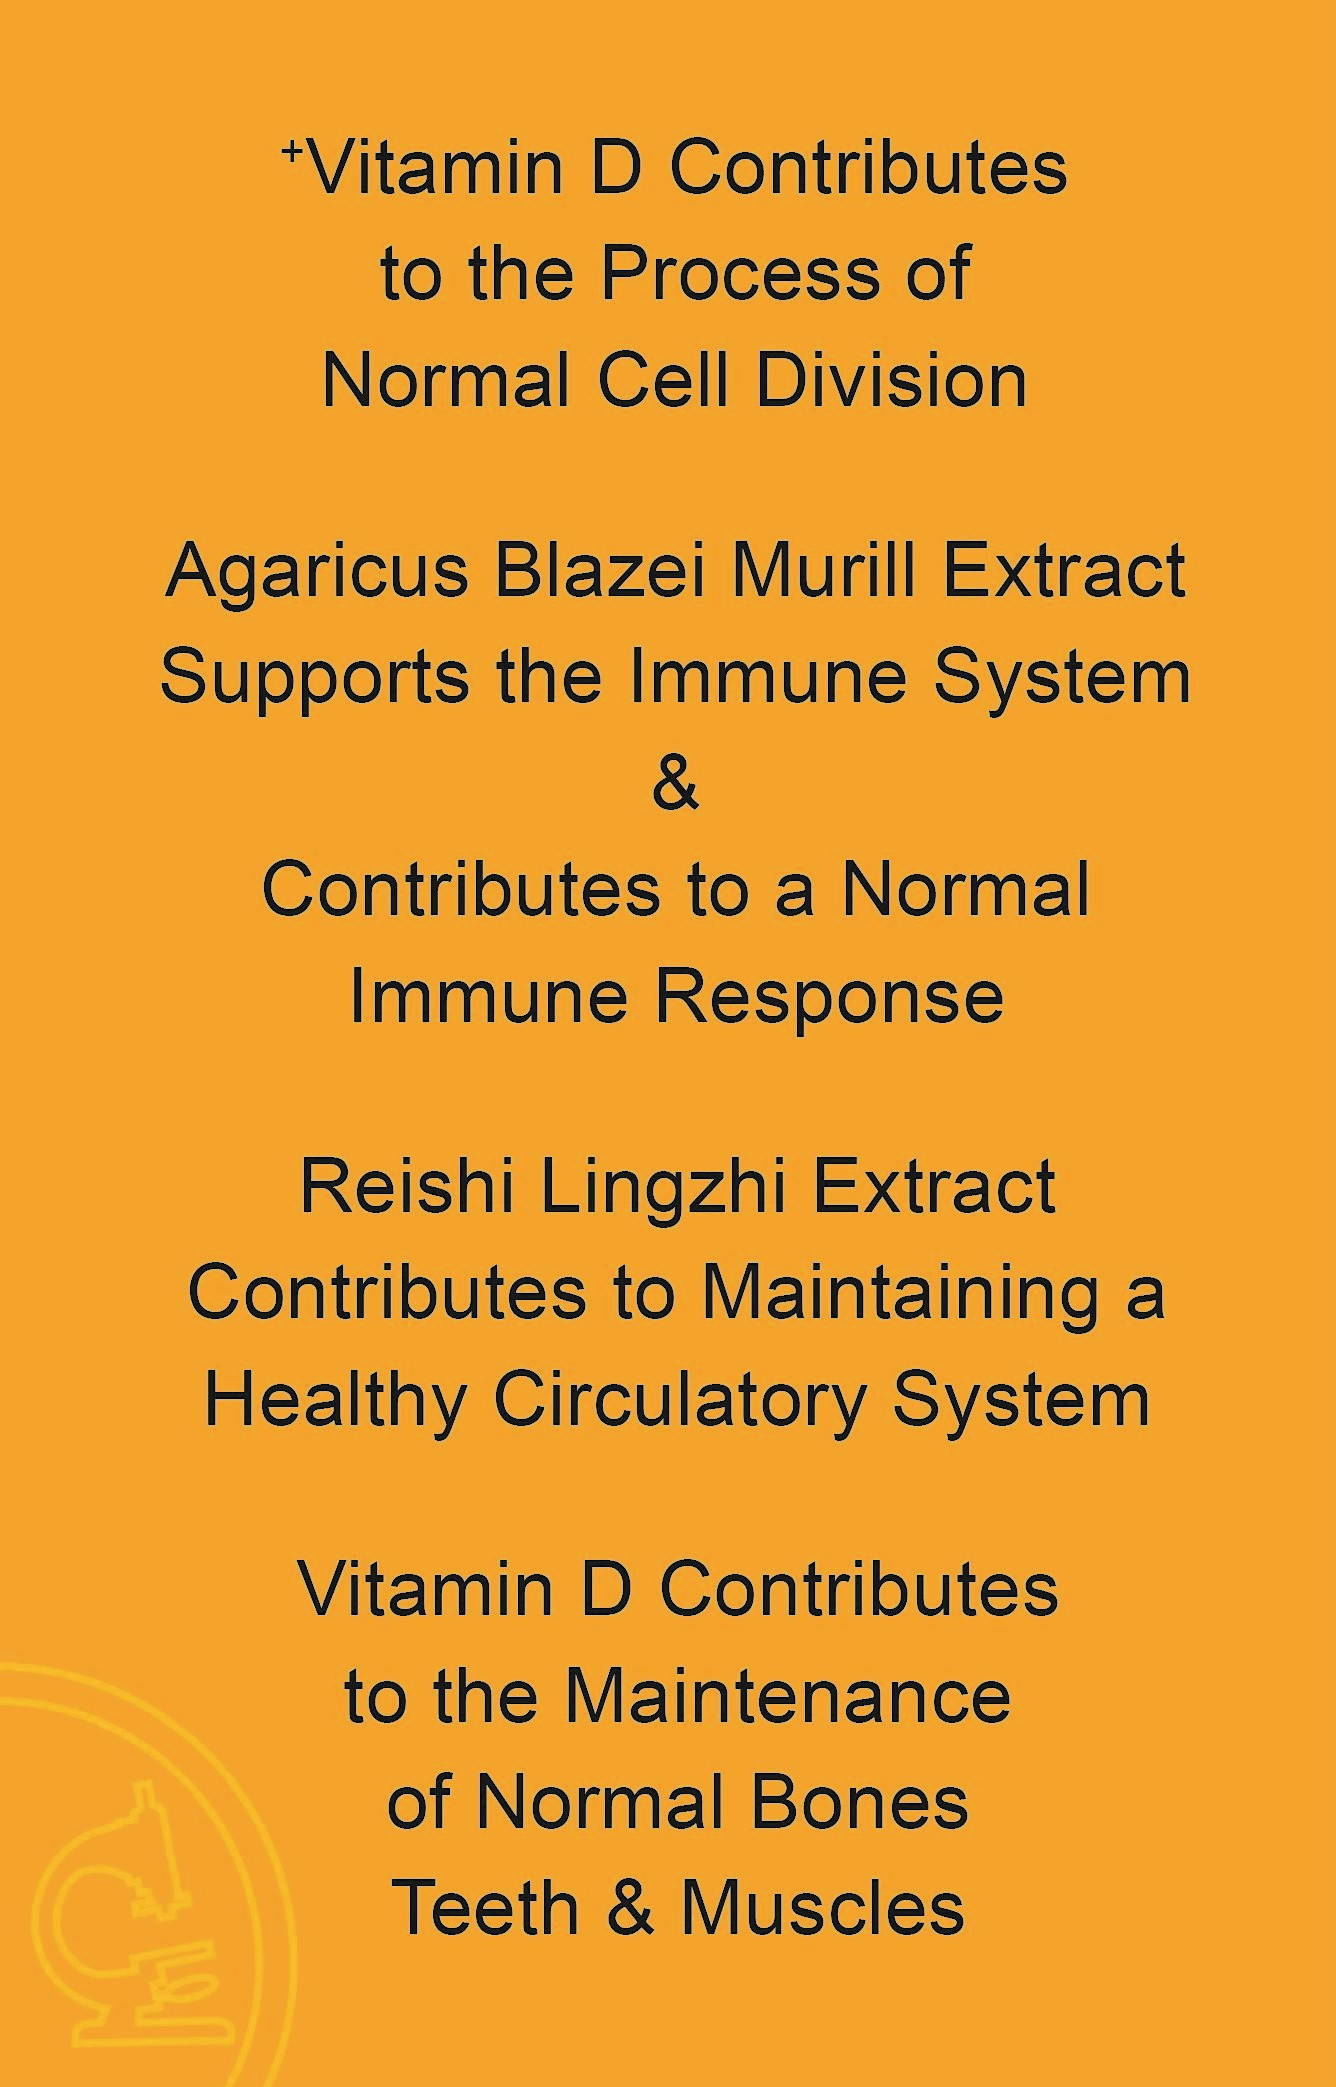 Healthy Cell 3 Benefits